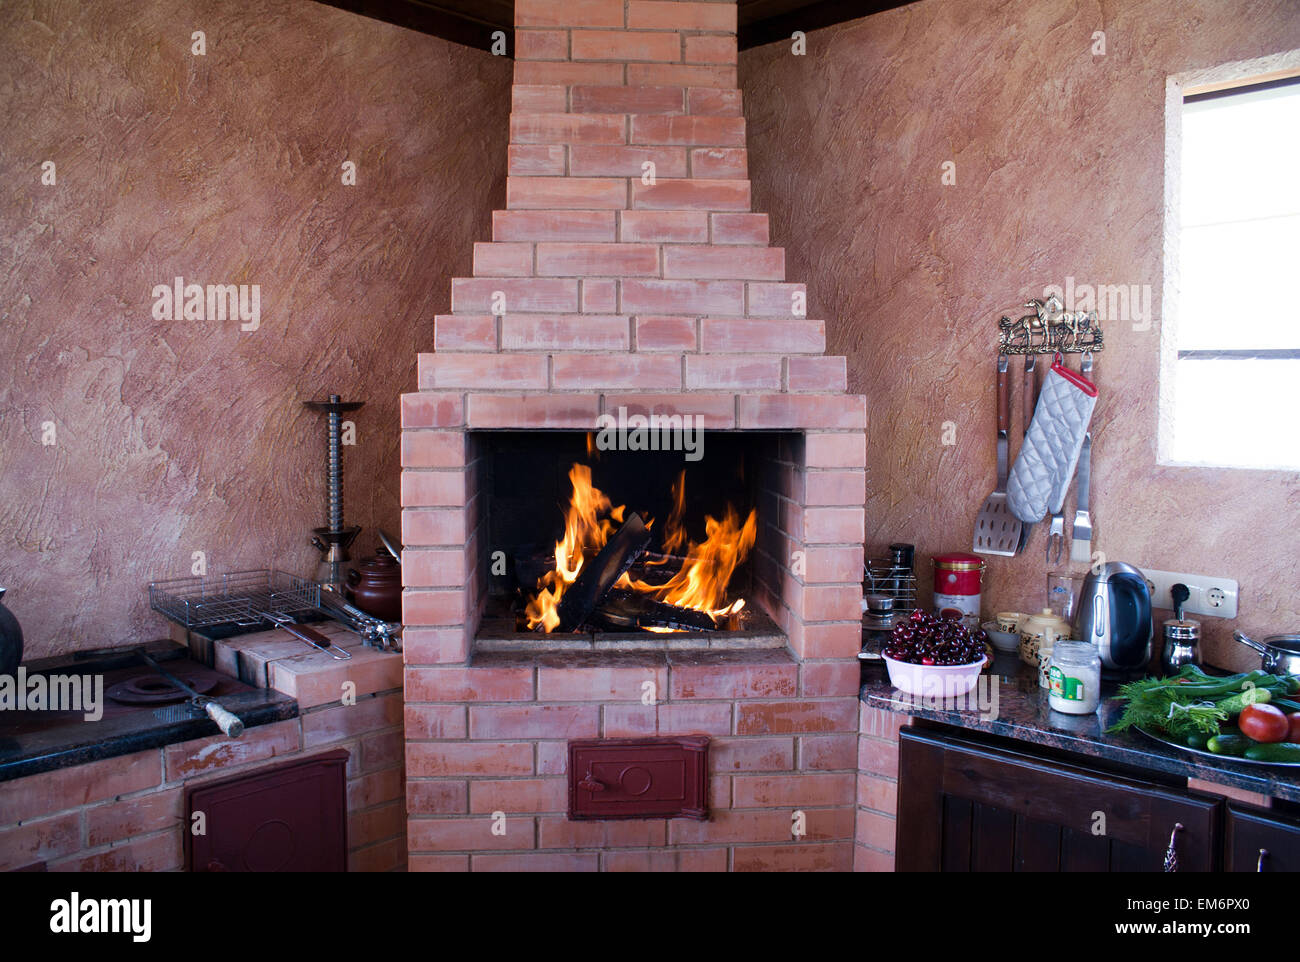 Exceptional Fireplace On A Summer Kitchen. Remarkable Construction For Rest And For  Cooking